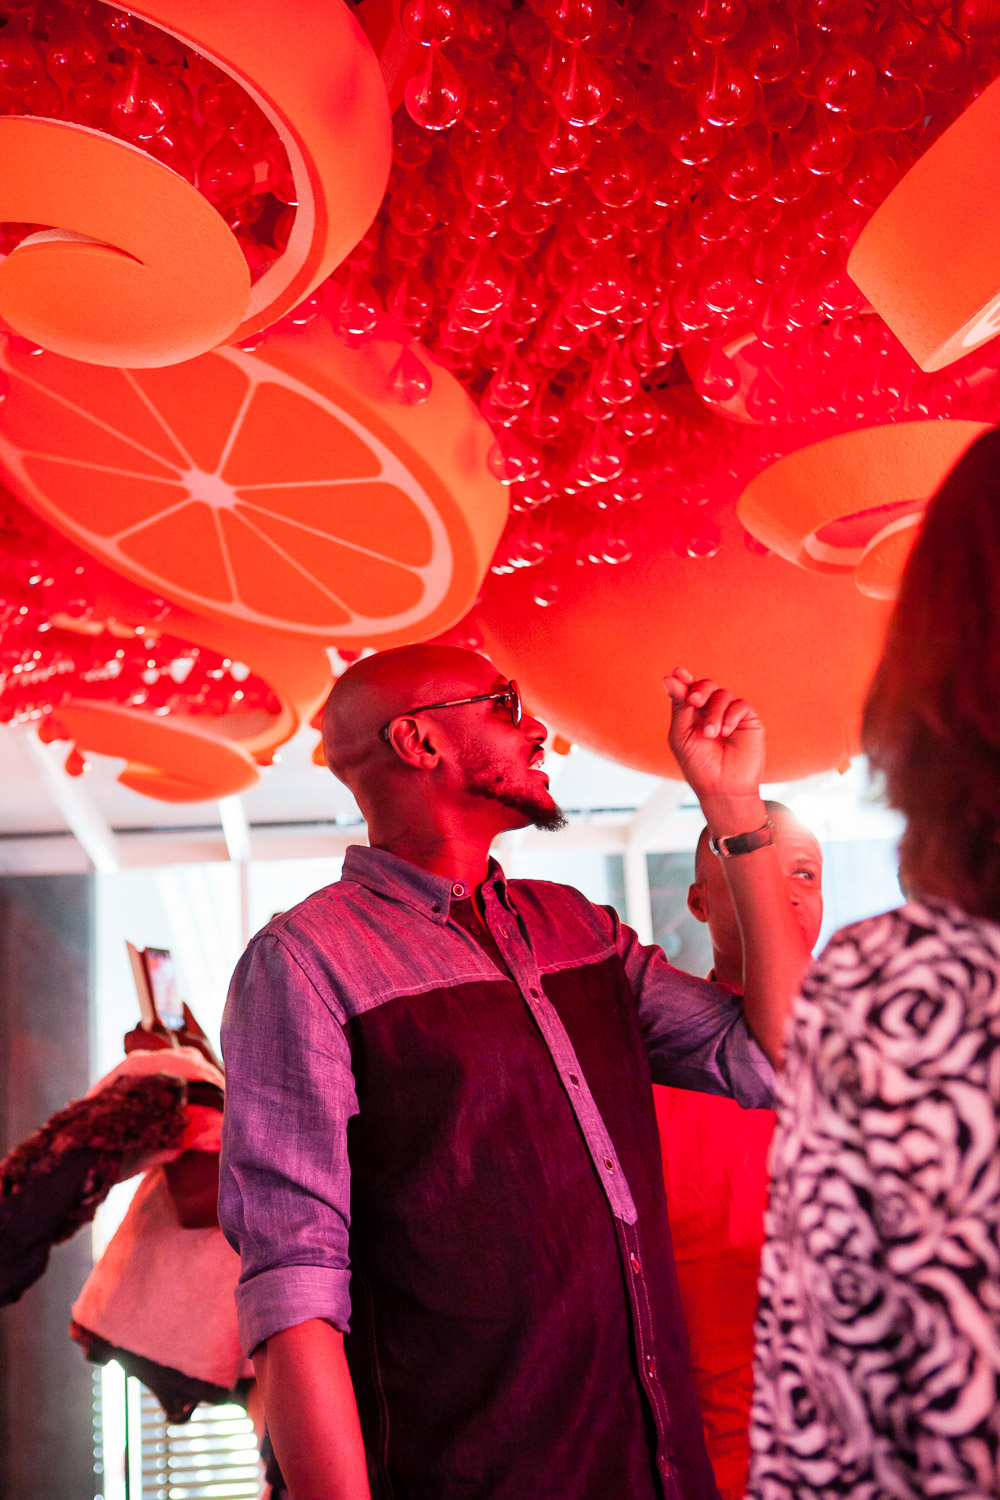 2Baba at Home of Campari 23